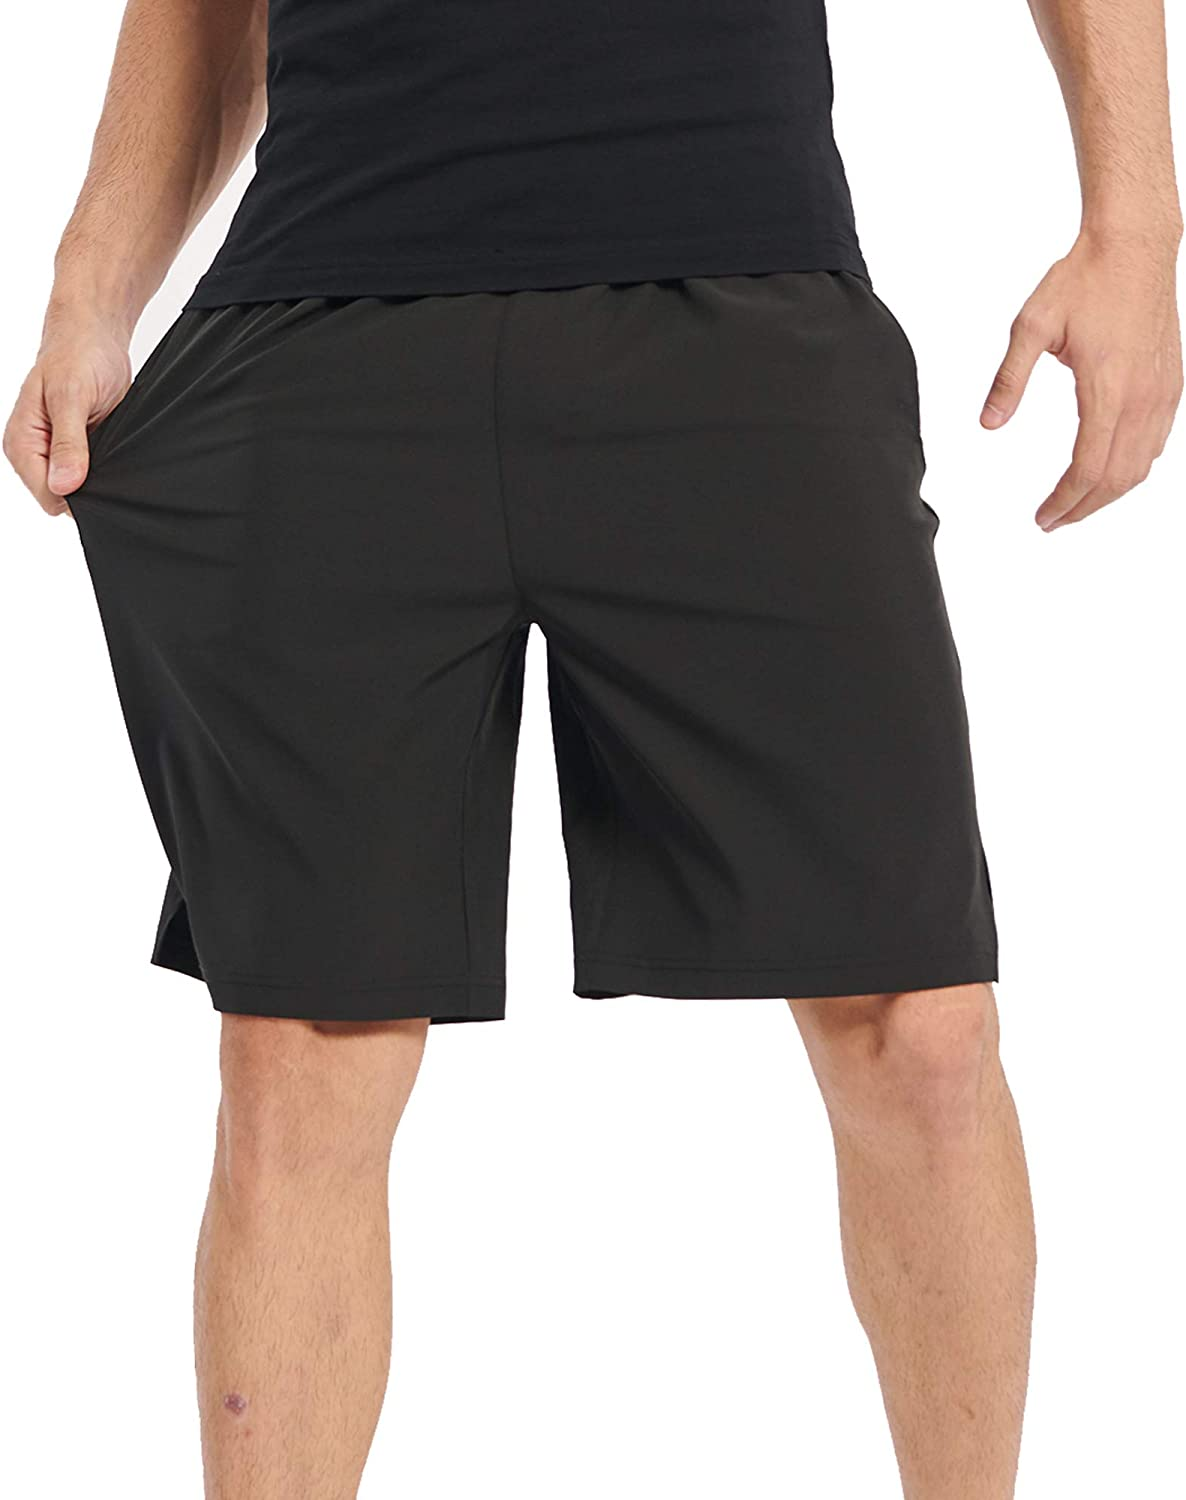 TOP-3 Workout Athletic Gym Mens Shorts for Running Basketball,9 Inch Inseam Elastic Waist with Drawstring and Pockets